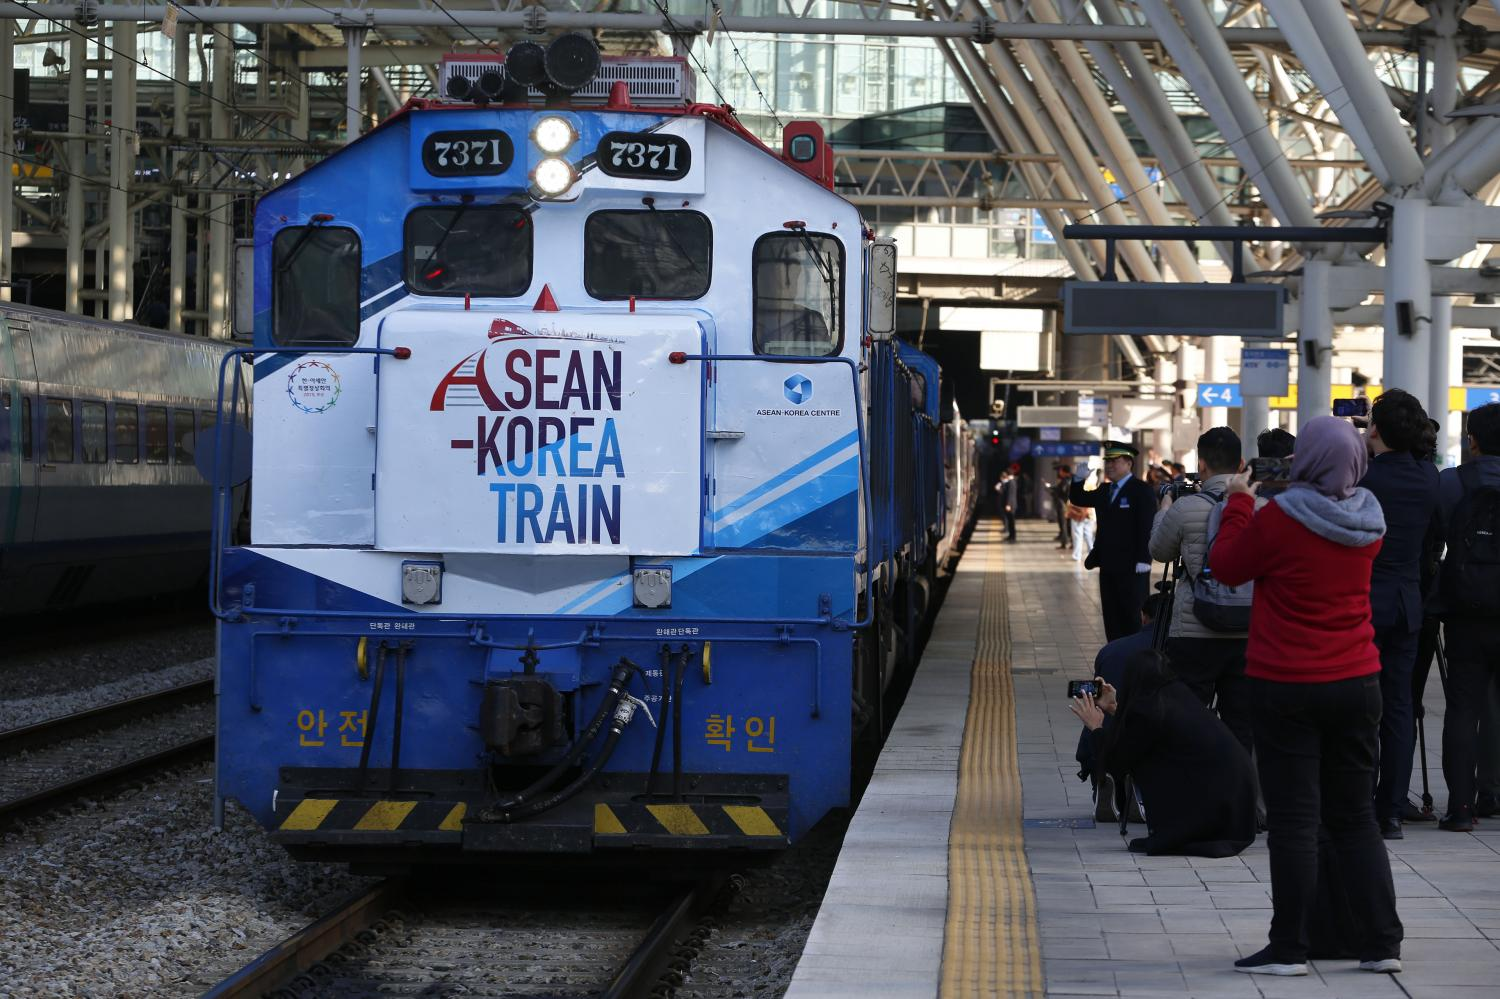 Journalists from around Asia attend the departure of the Asean-Korea Train last month in Seoul.(Photo by Pornprom Satrabhaya)